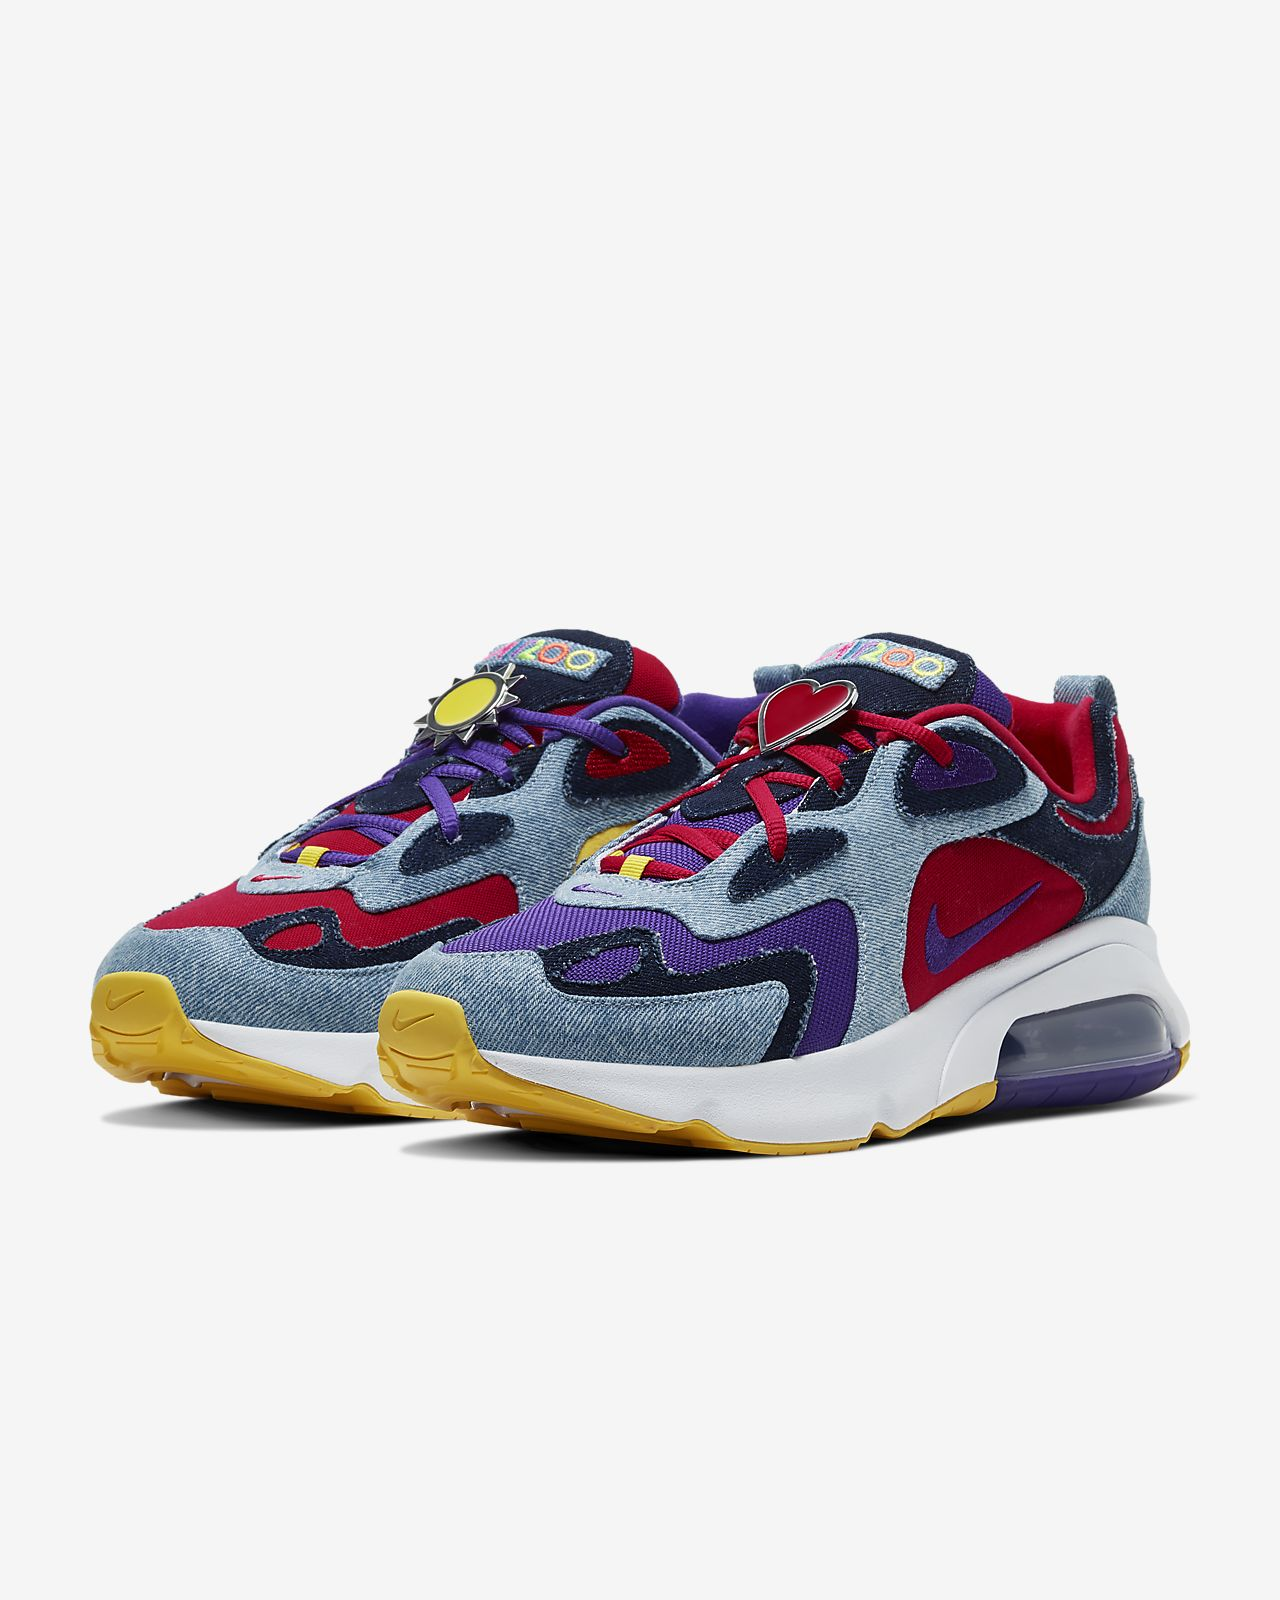 Men's Nike Air Max 200 Casual Shoes| JD Sports